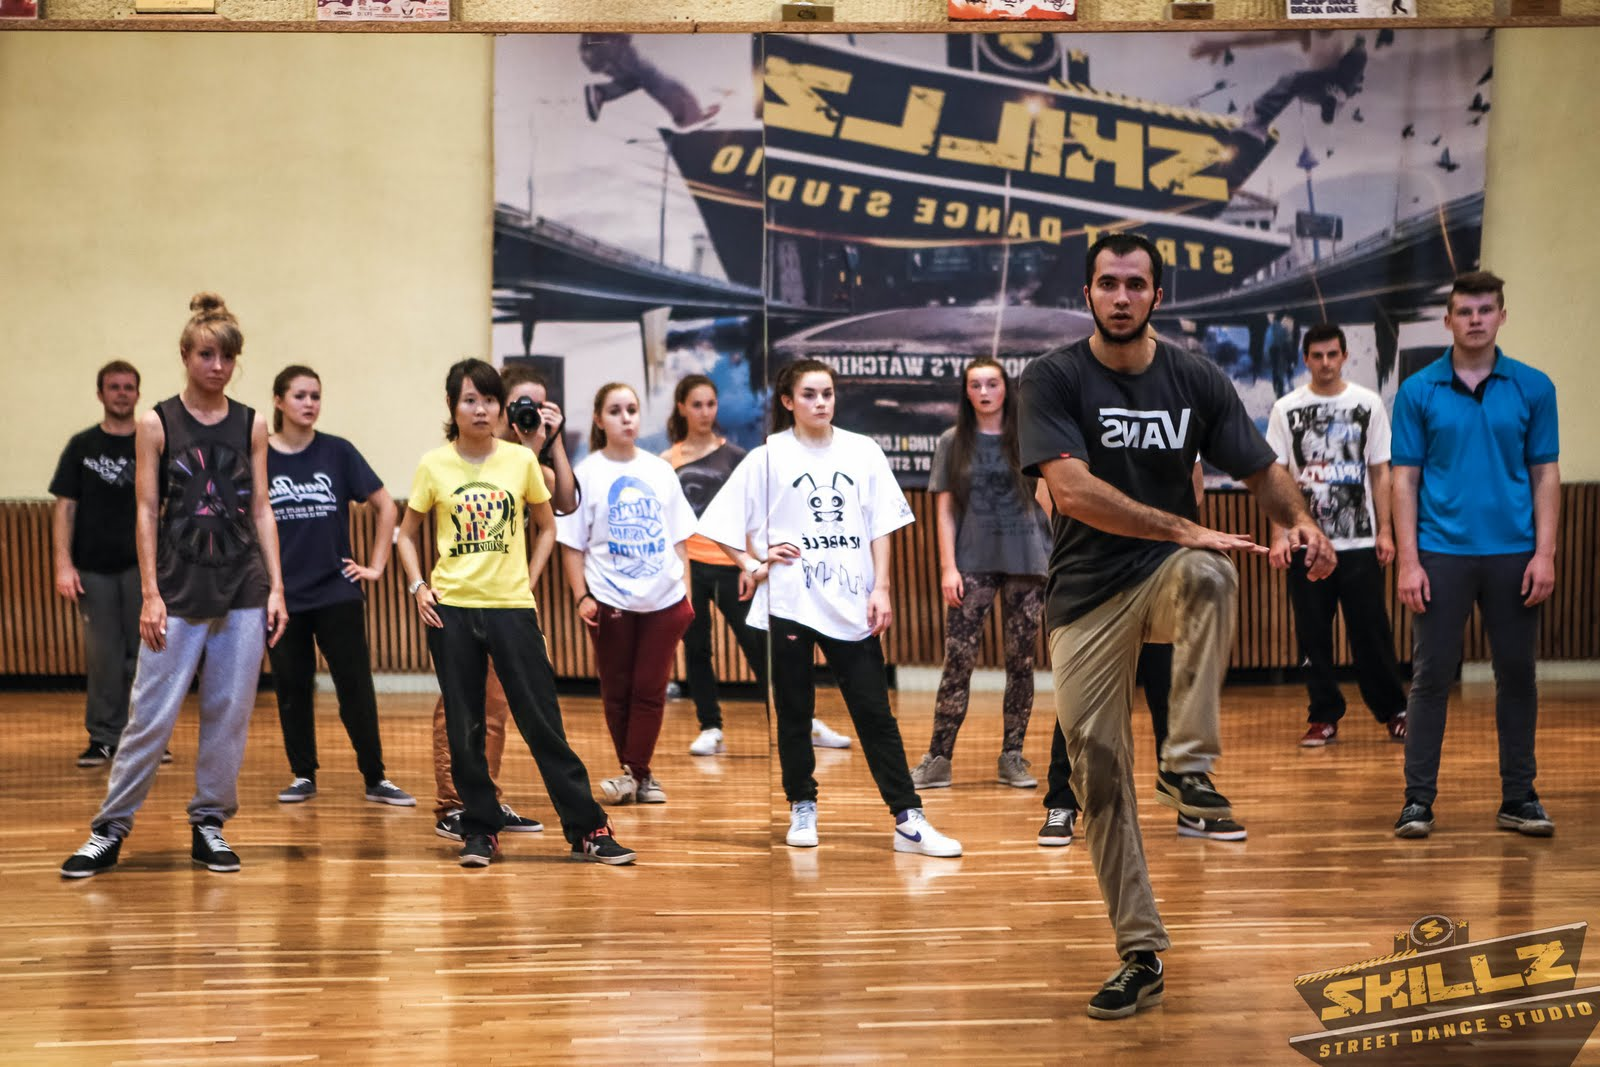 Workshop with Kusch (Russia) - IMG_4728.jpg